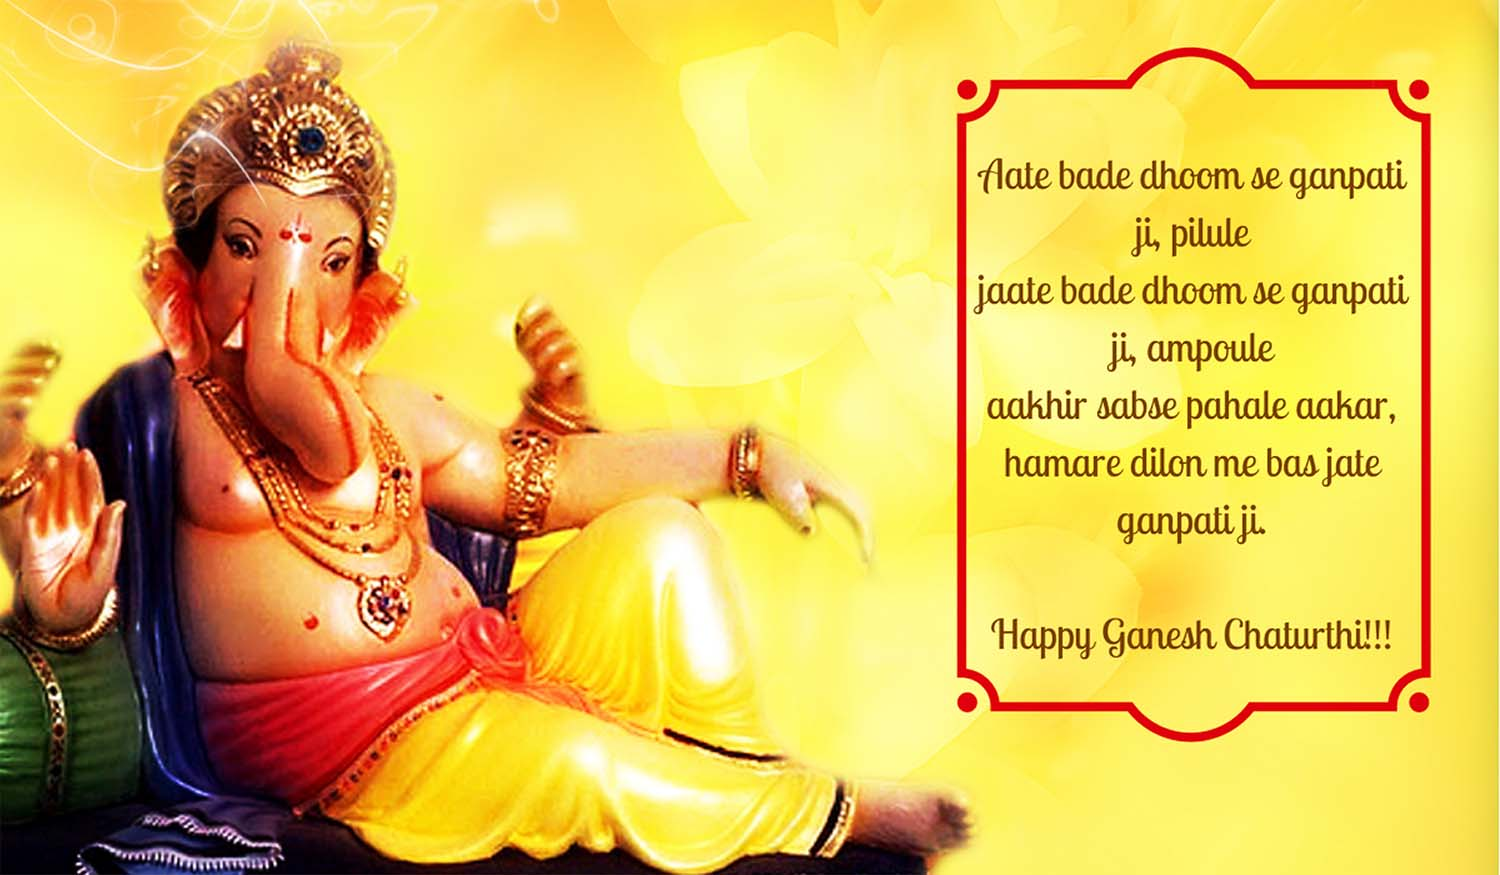 Lord Ganesha Utsav Quotes 2017